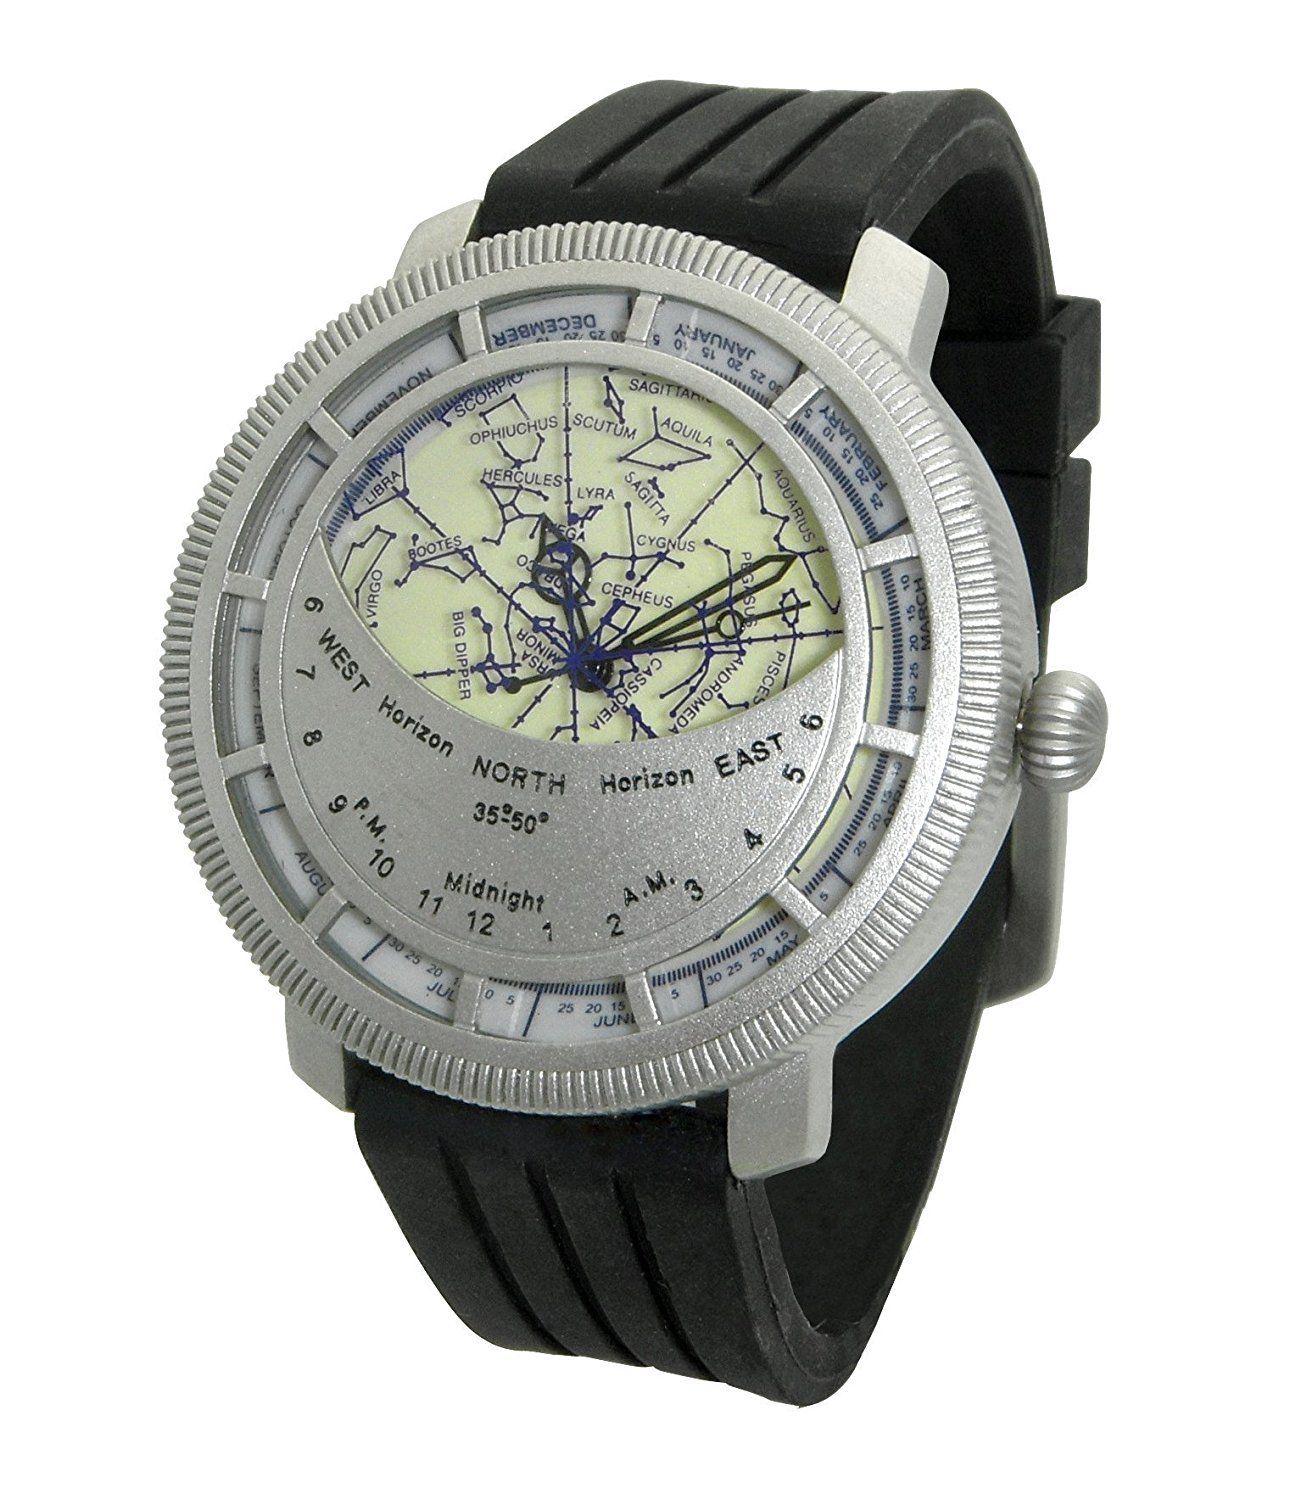 Image: Planisphere watch